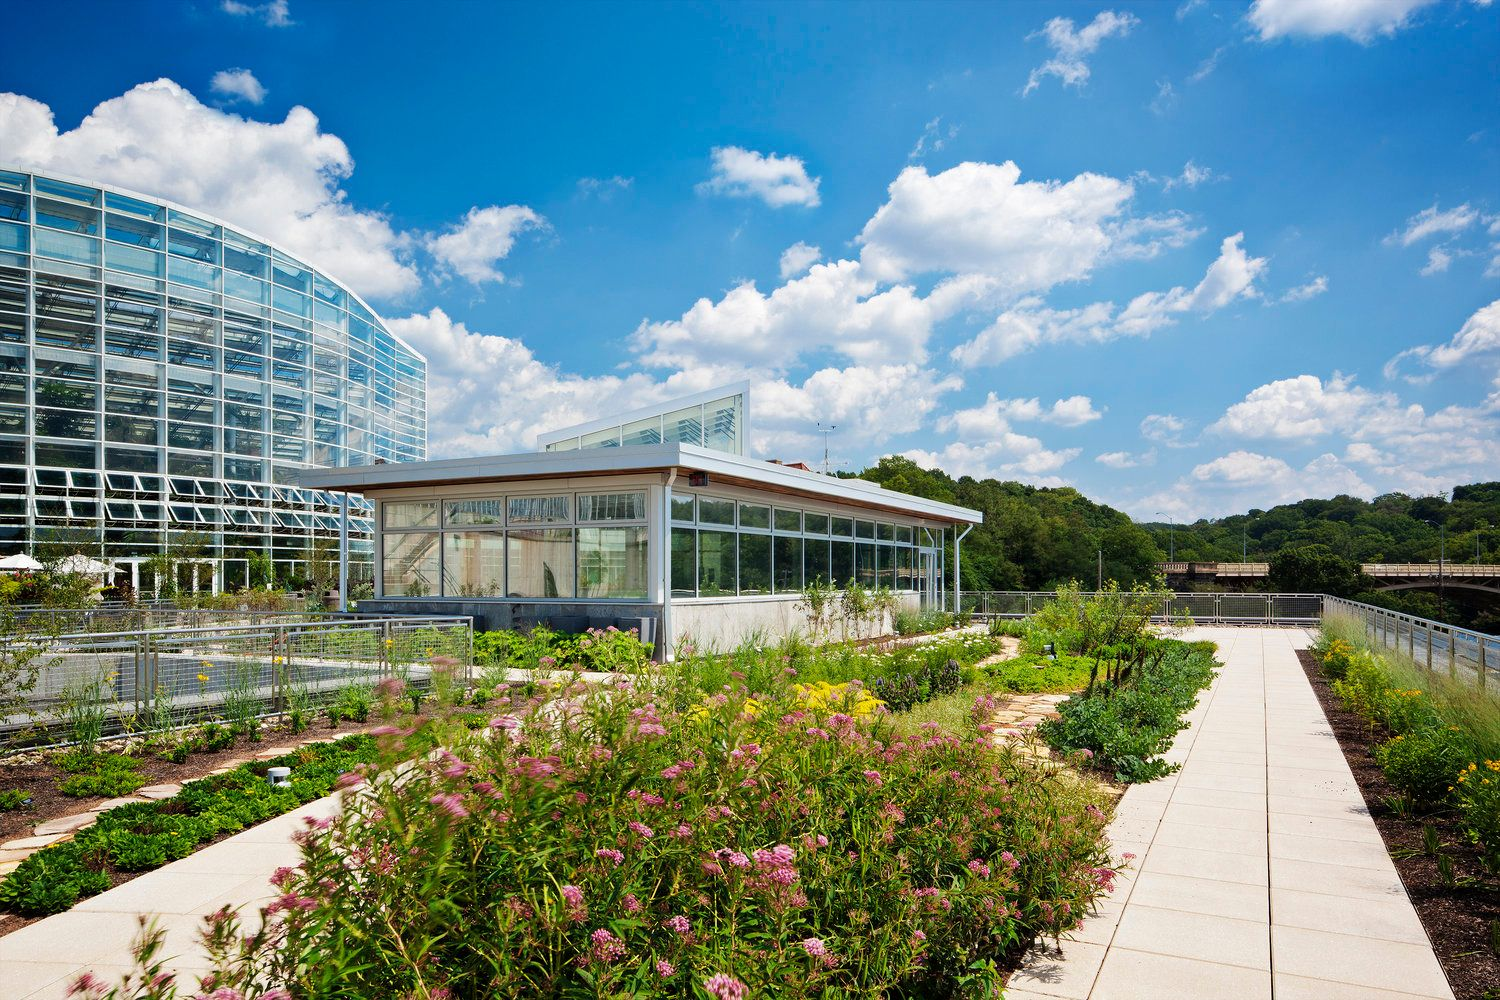 Center For Sustainable Landscapes (Pittsburgh, Pa.)